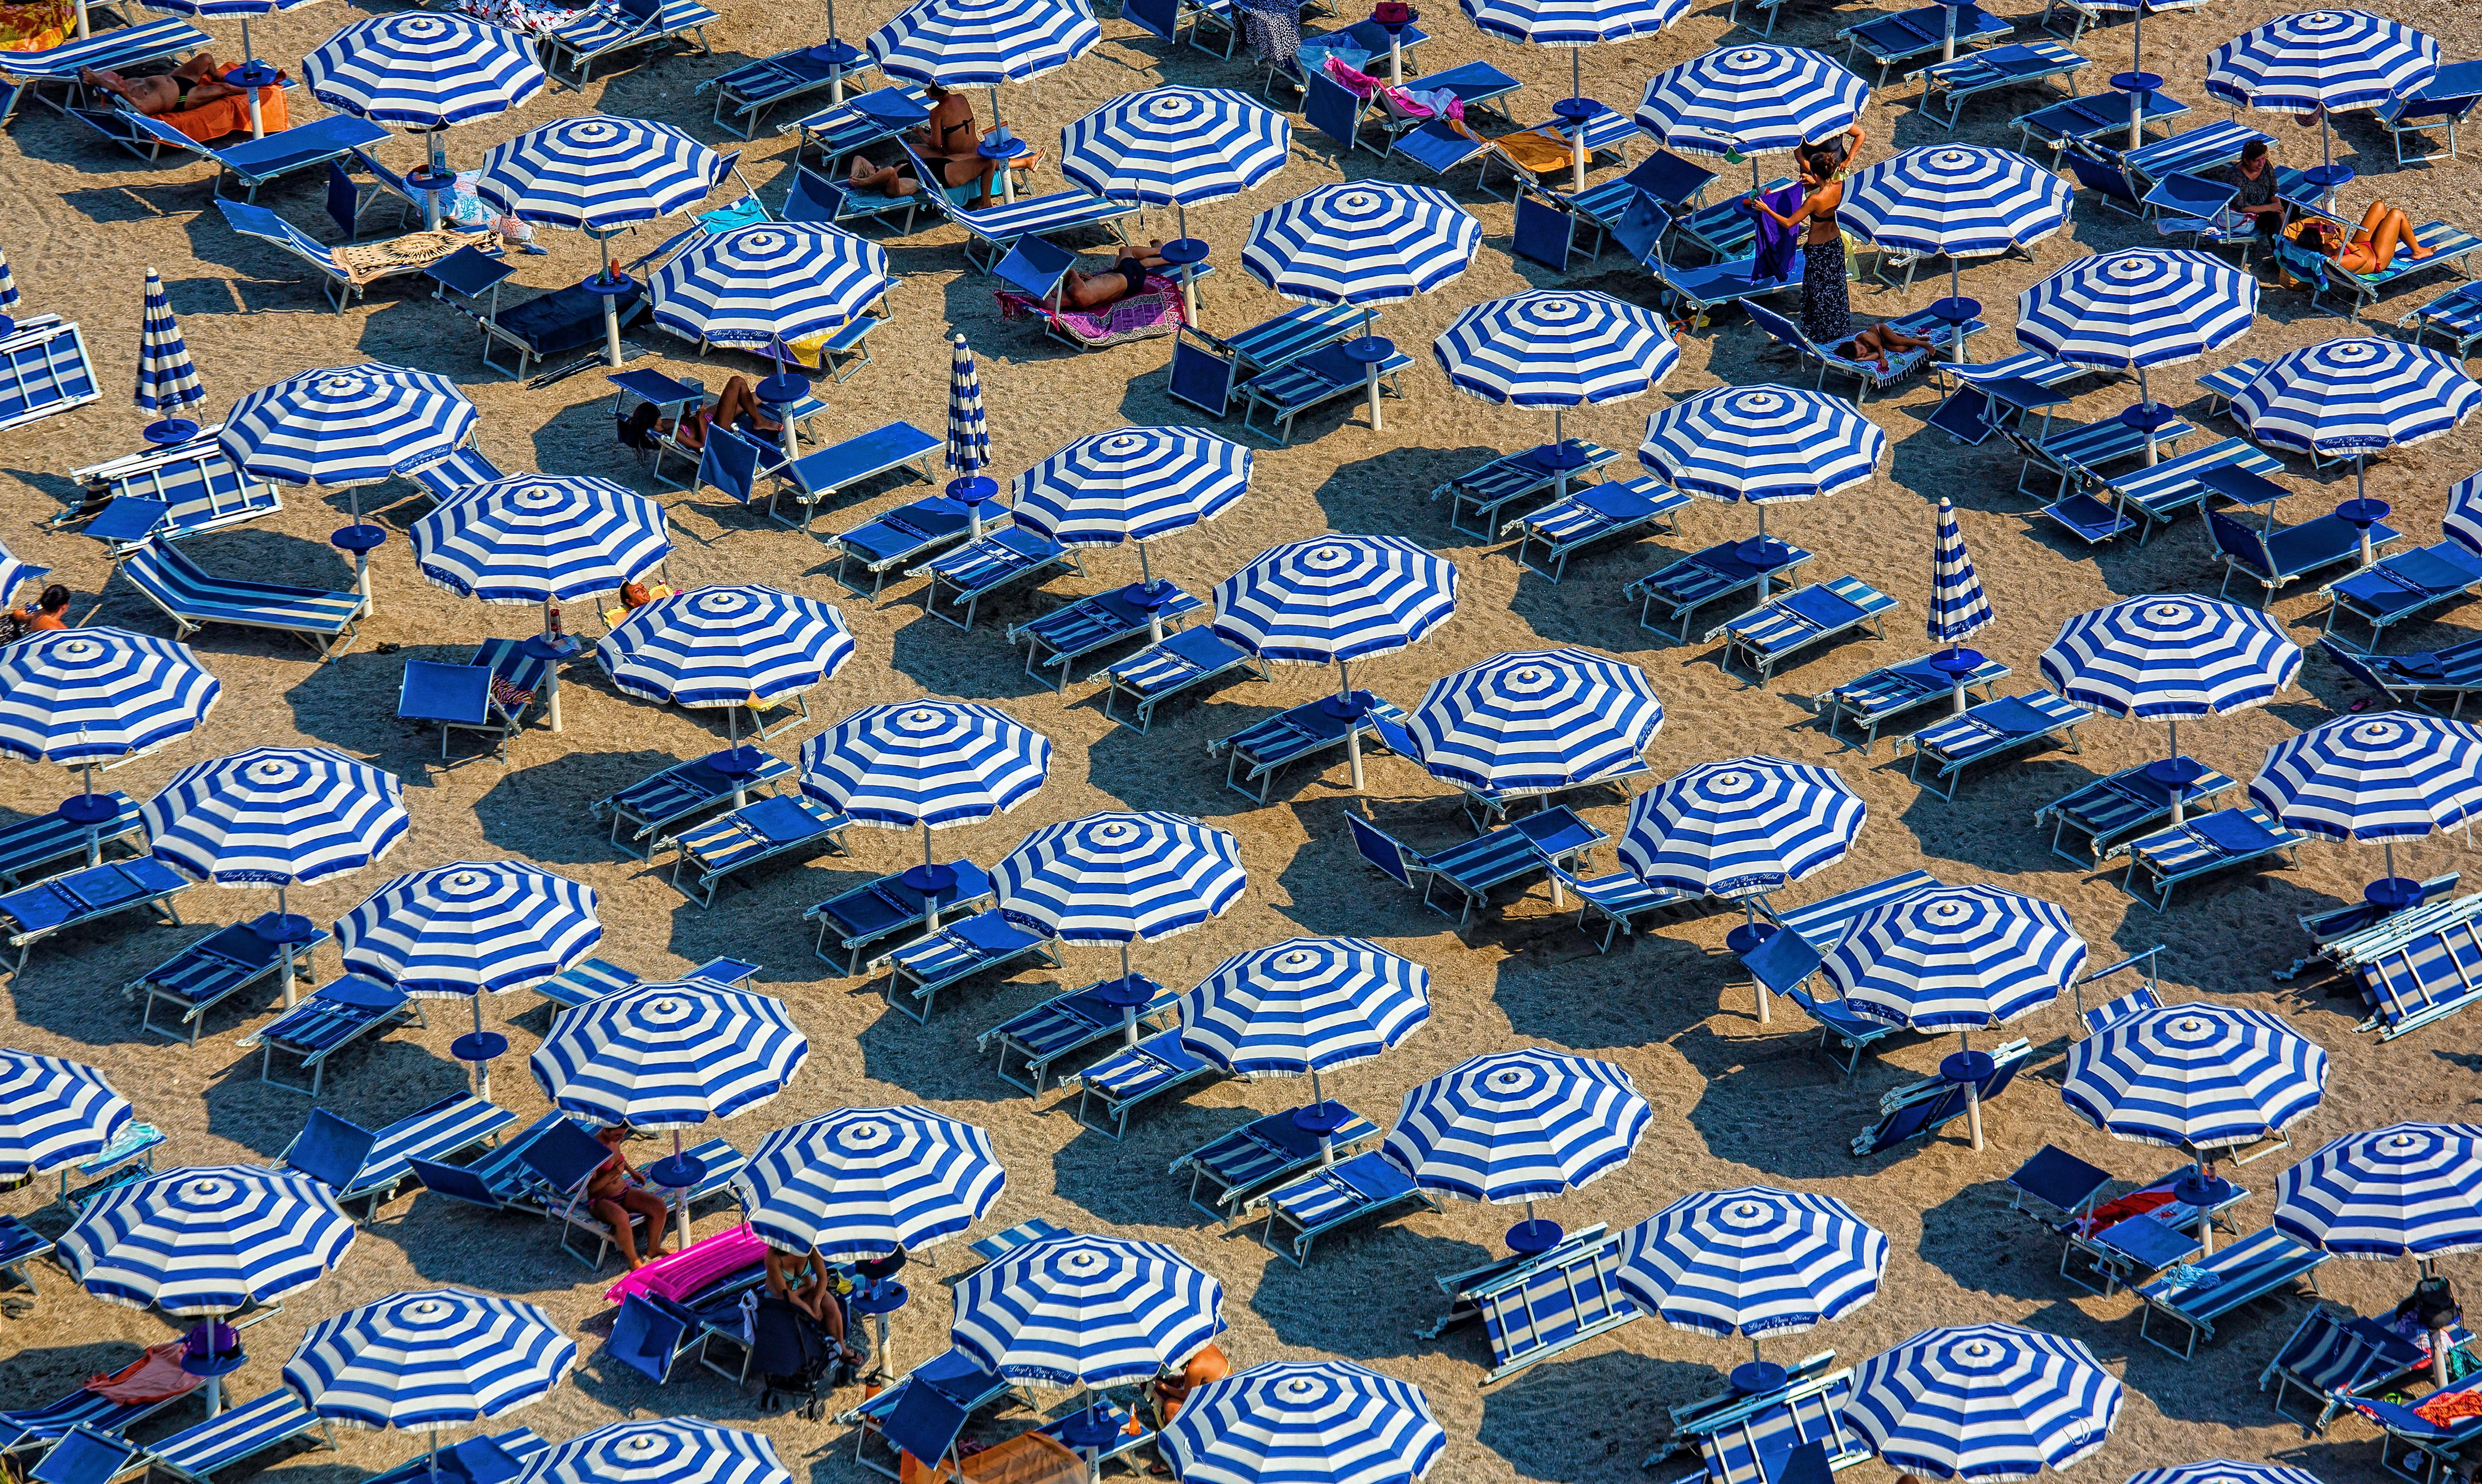 A high-angle shot of rows of white and blue umbrellas over blue deck chairs lining a sandy beach